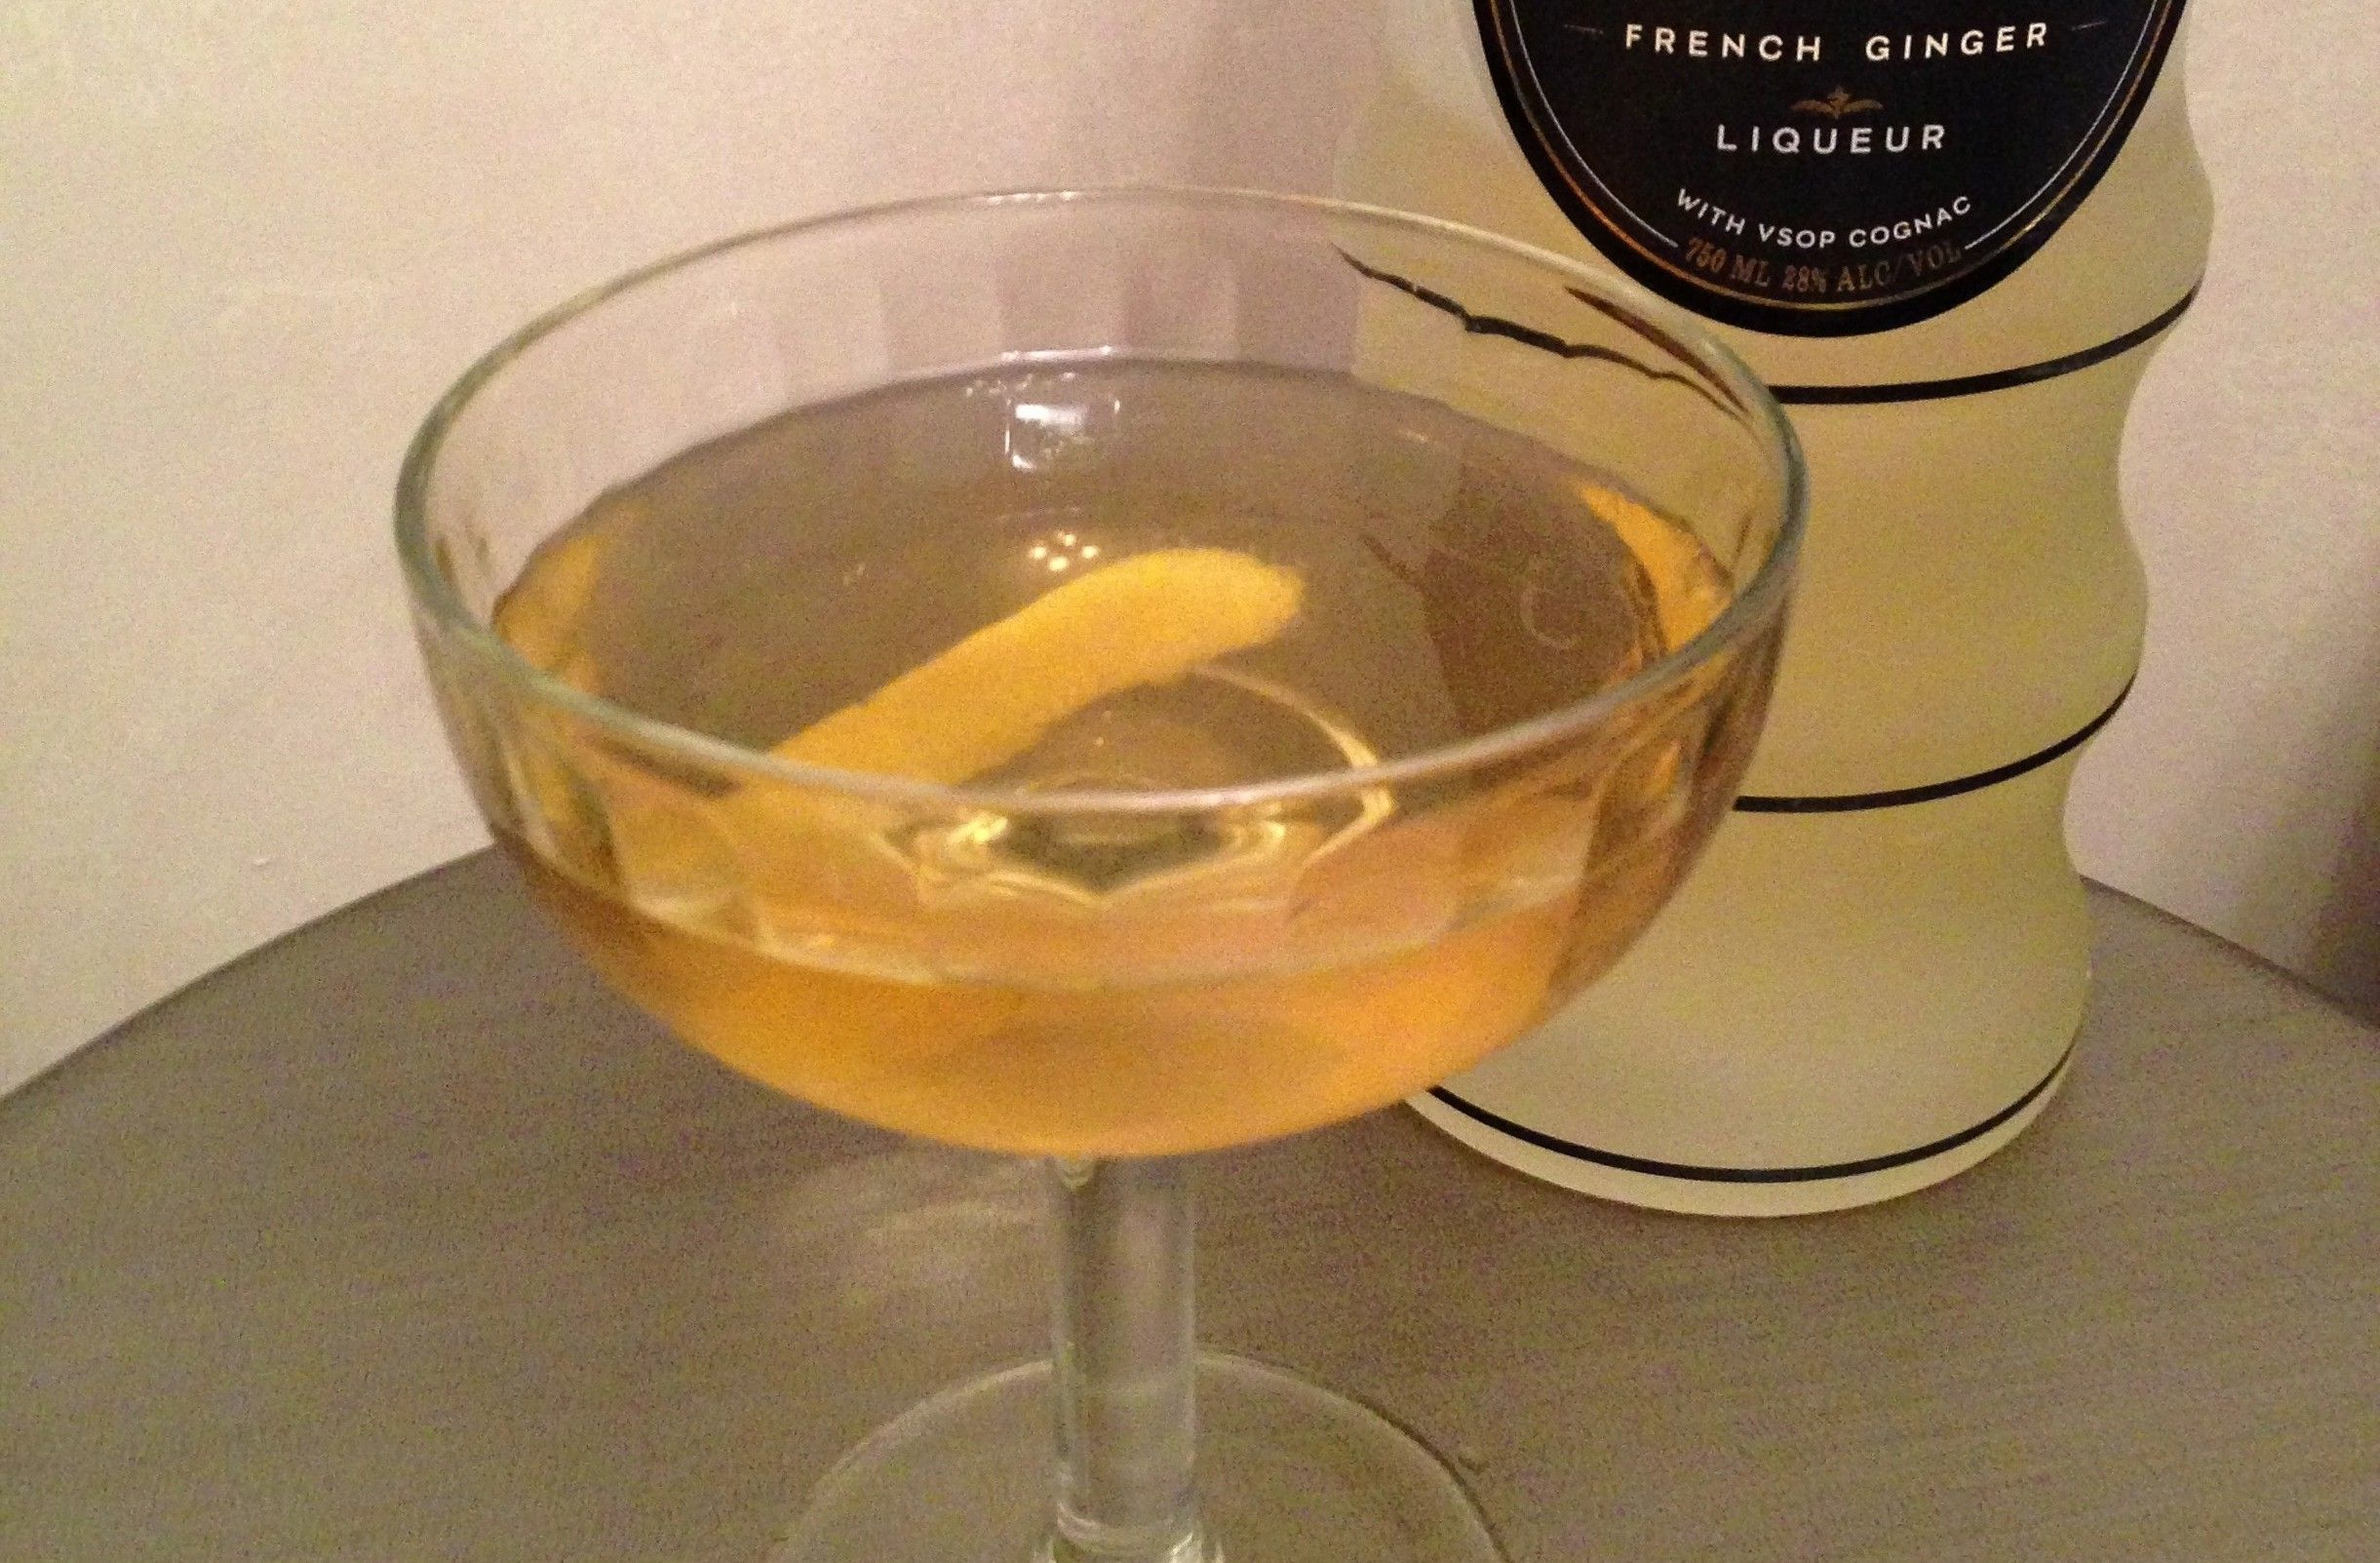 Maureen O'Hara - Add the Irish whiskey, dry vermouth, Domaine de Canton and habanero shrub and hopped grapefruit bitters to a chilled mixing glass. Add ice and stir until well chilled. Strain into a chilled cocktail glass. Garnish with a lemon twist